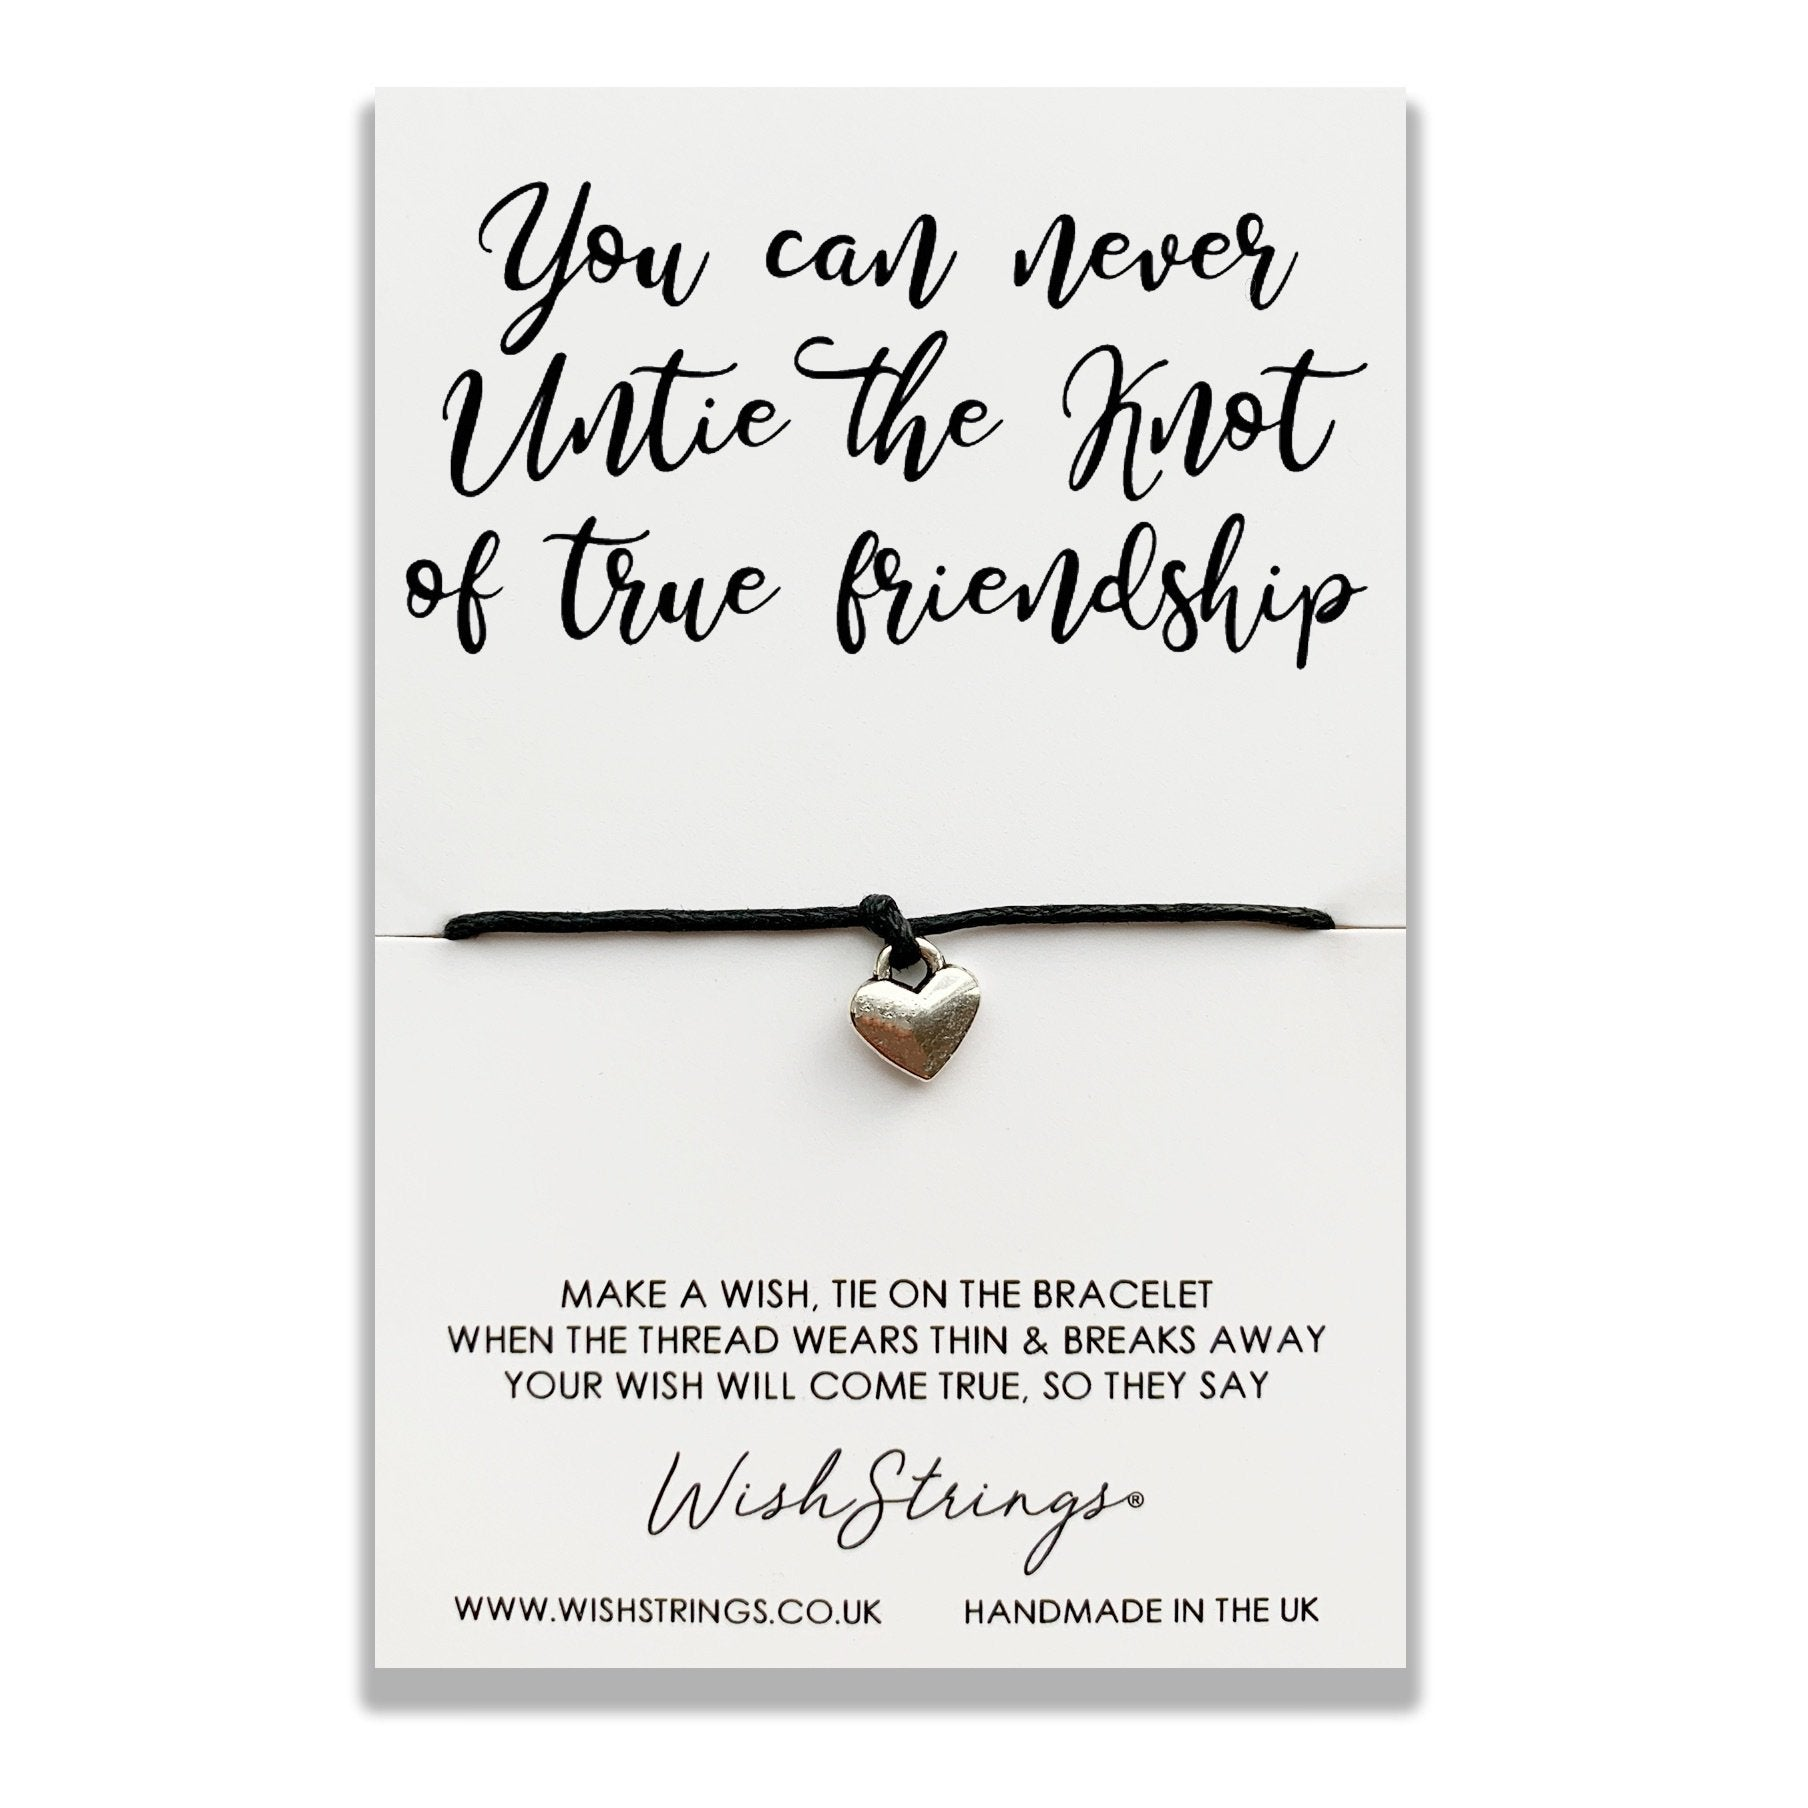 KNOT OF TRUE FRIENDSHIP - WishStrings - WS276